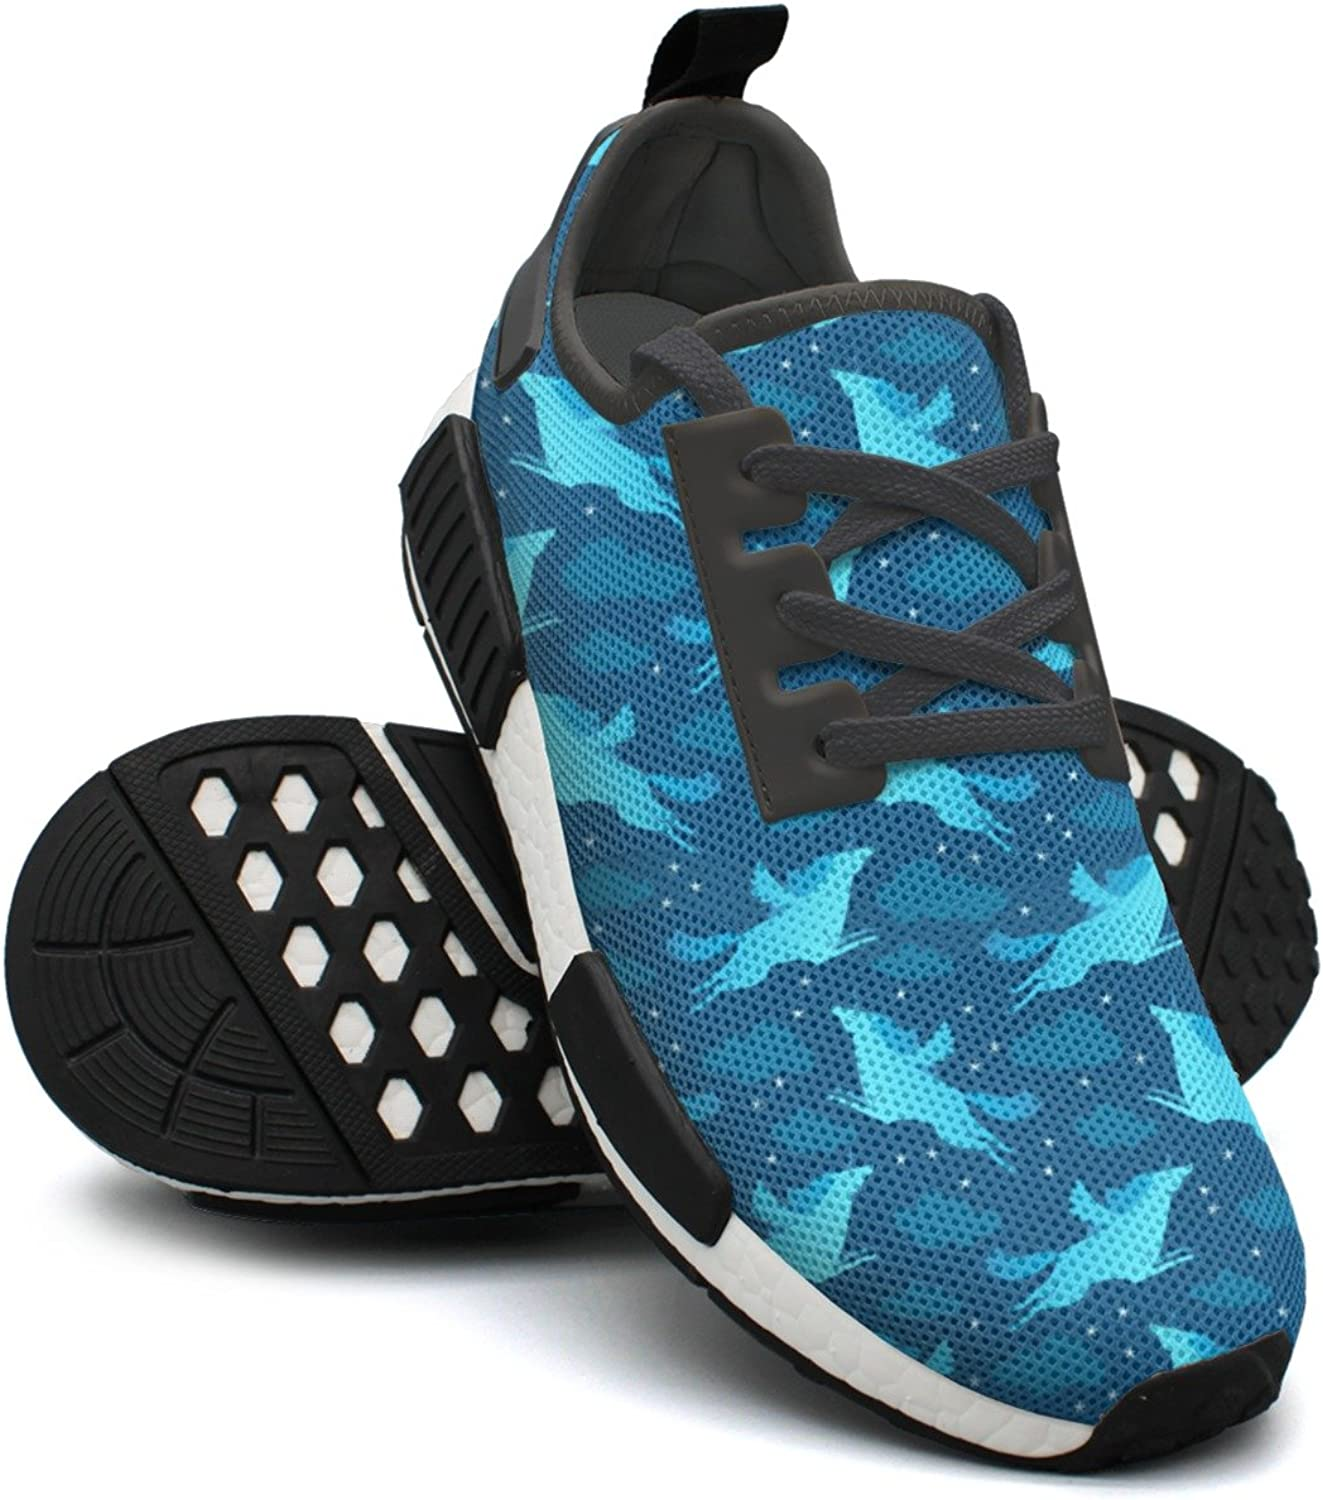 bluee Star Sky Fly Unicorn Casual Sport Jogging shoes for Women NMD